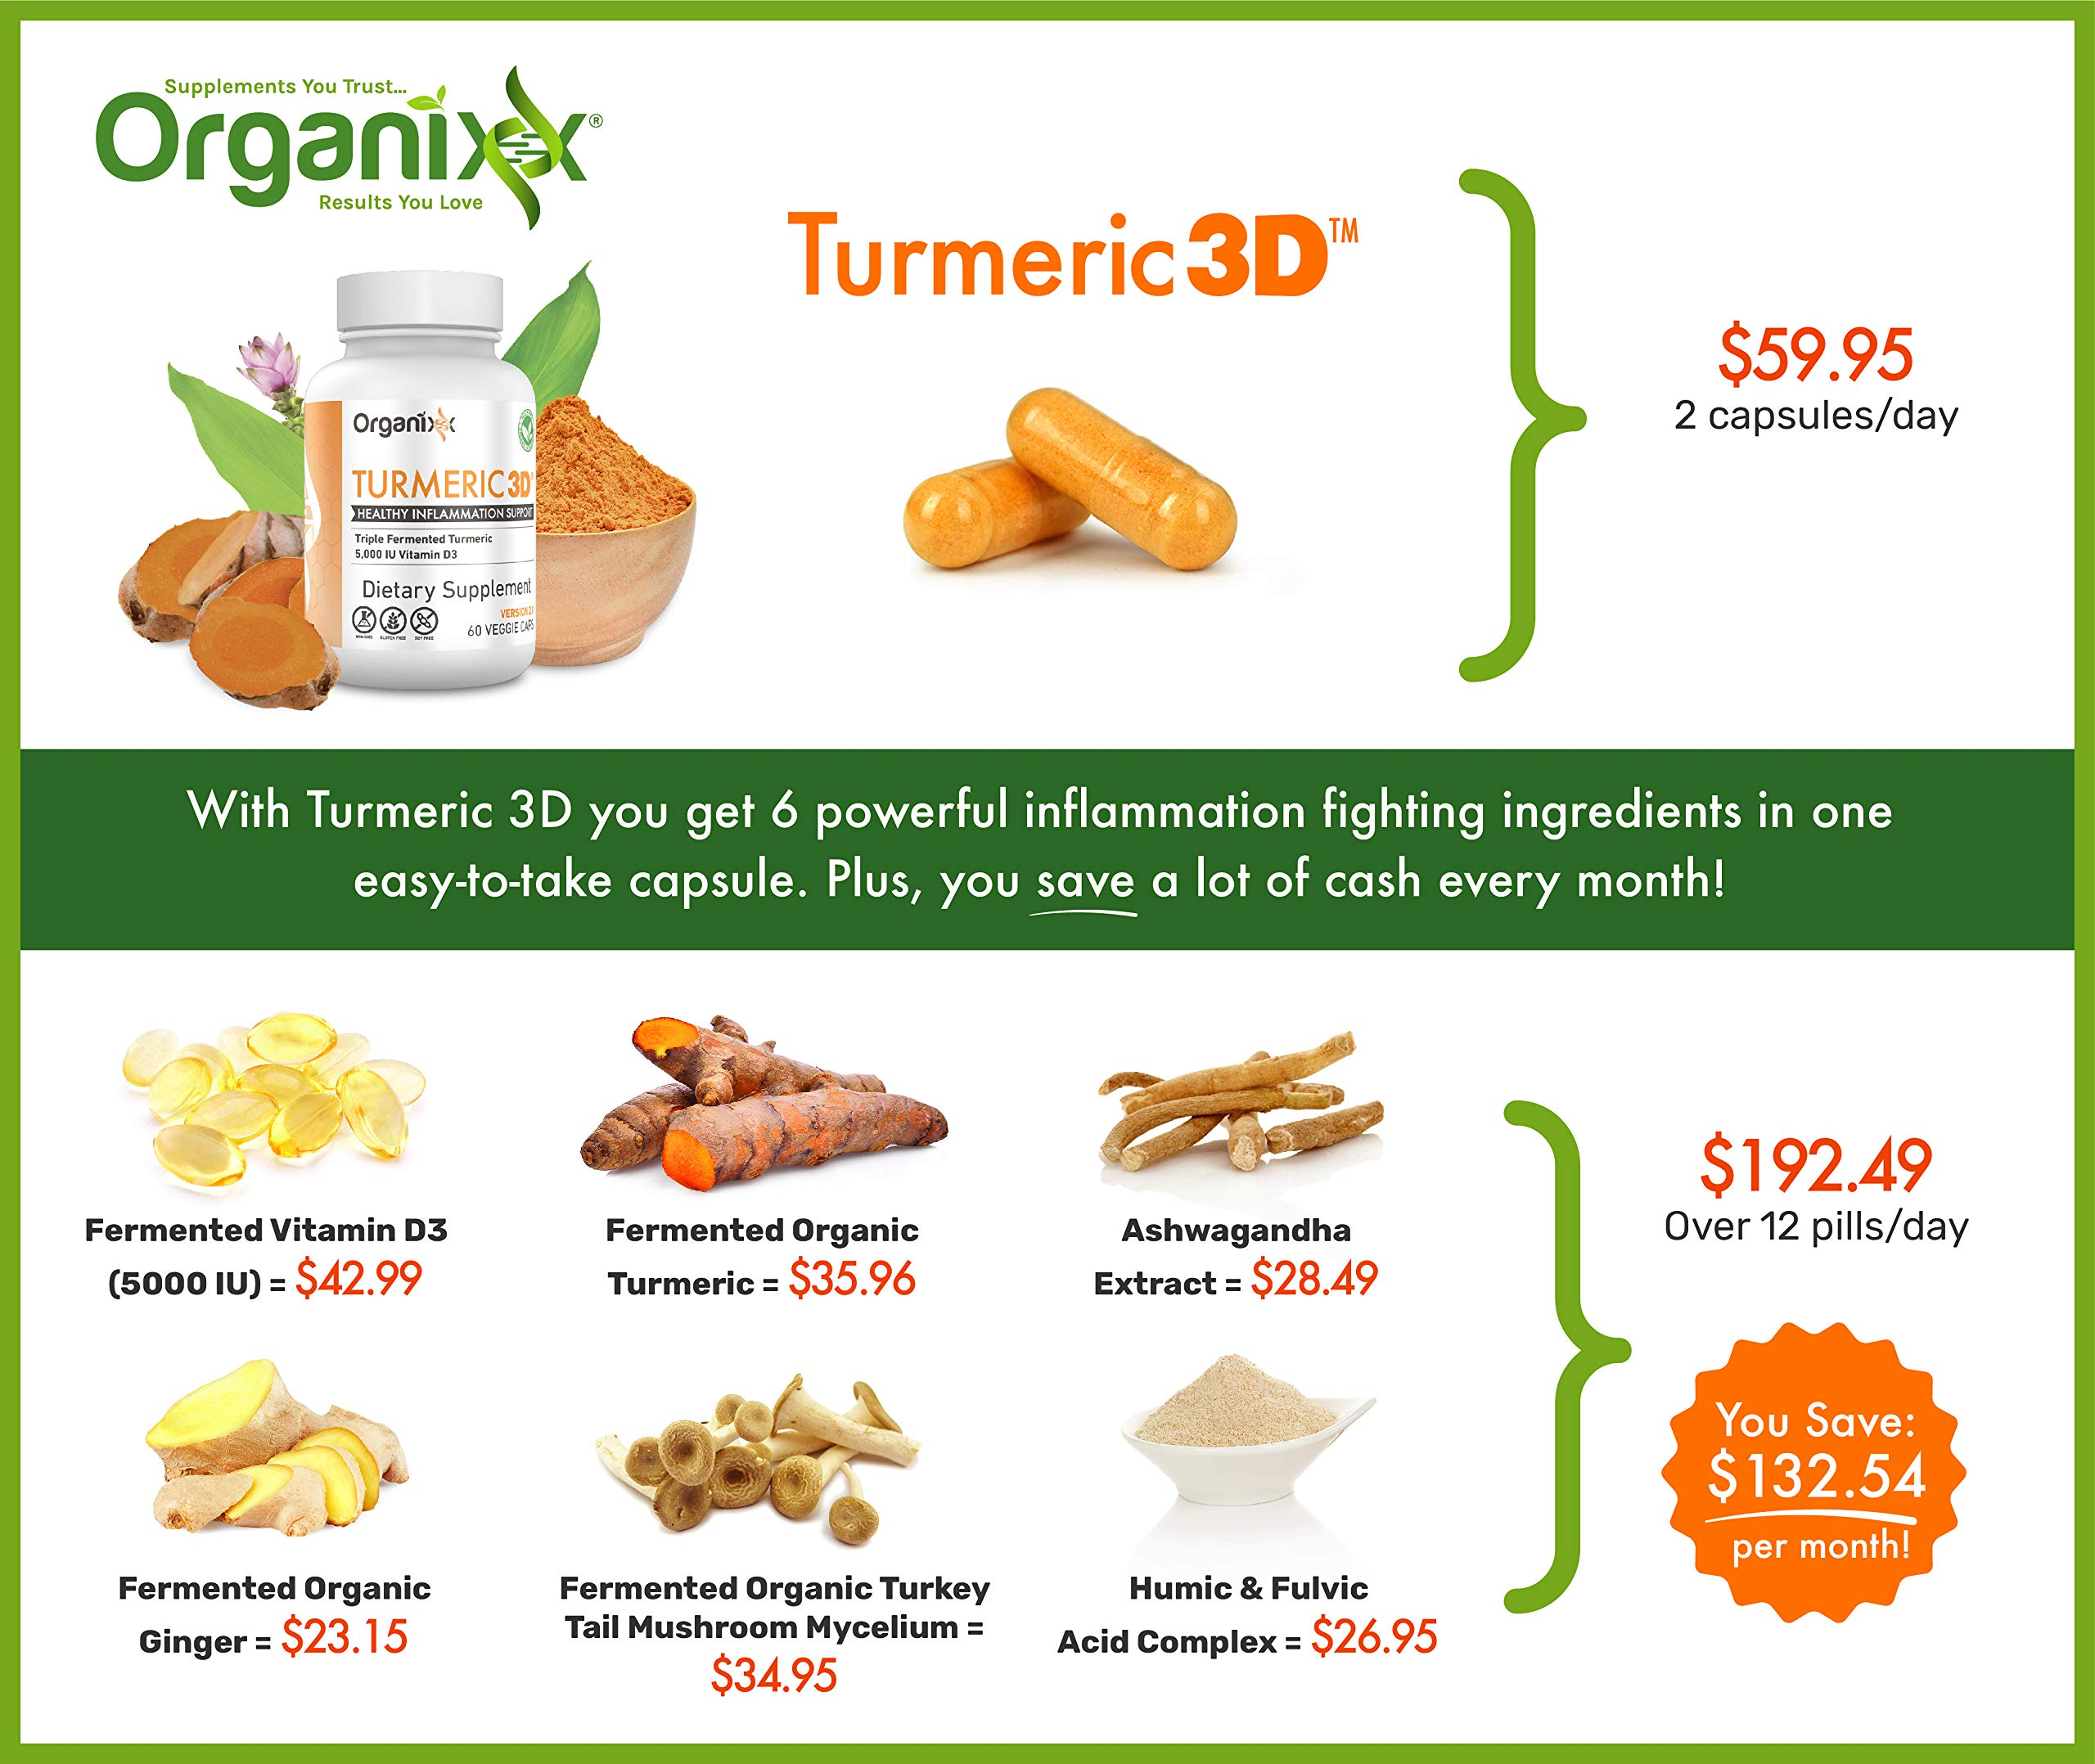 Organic Turmeric Curcumin Supplement with Ginger for Joint Pain Relief, 6-in-1 Anti-Inflammatory Blend - No Black Pepper (No Aftertaste) - Turmeric 3D by Organixx (60 Capsules)